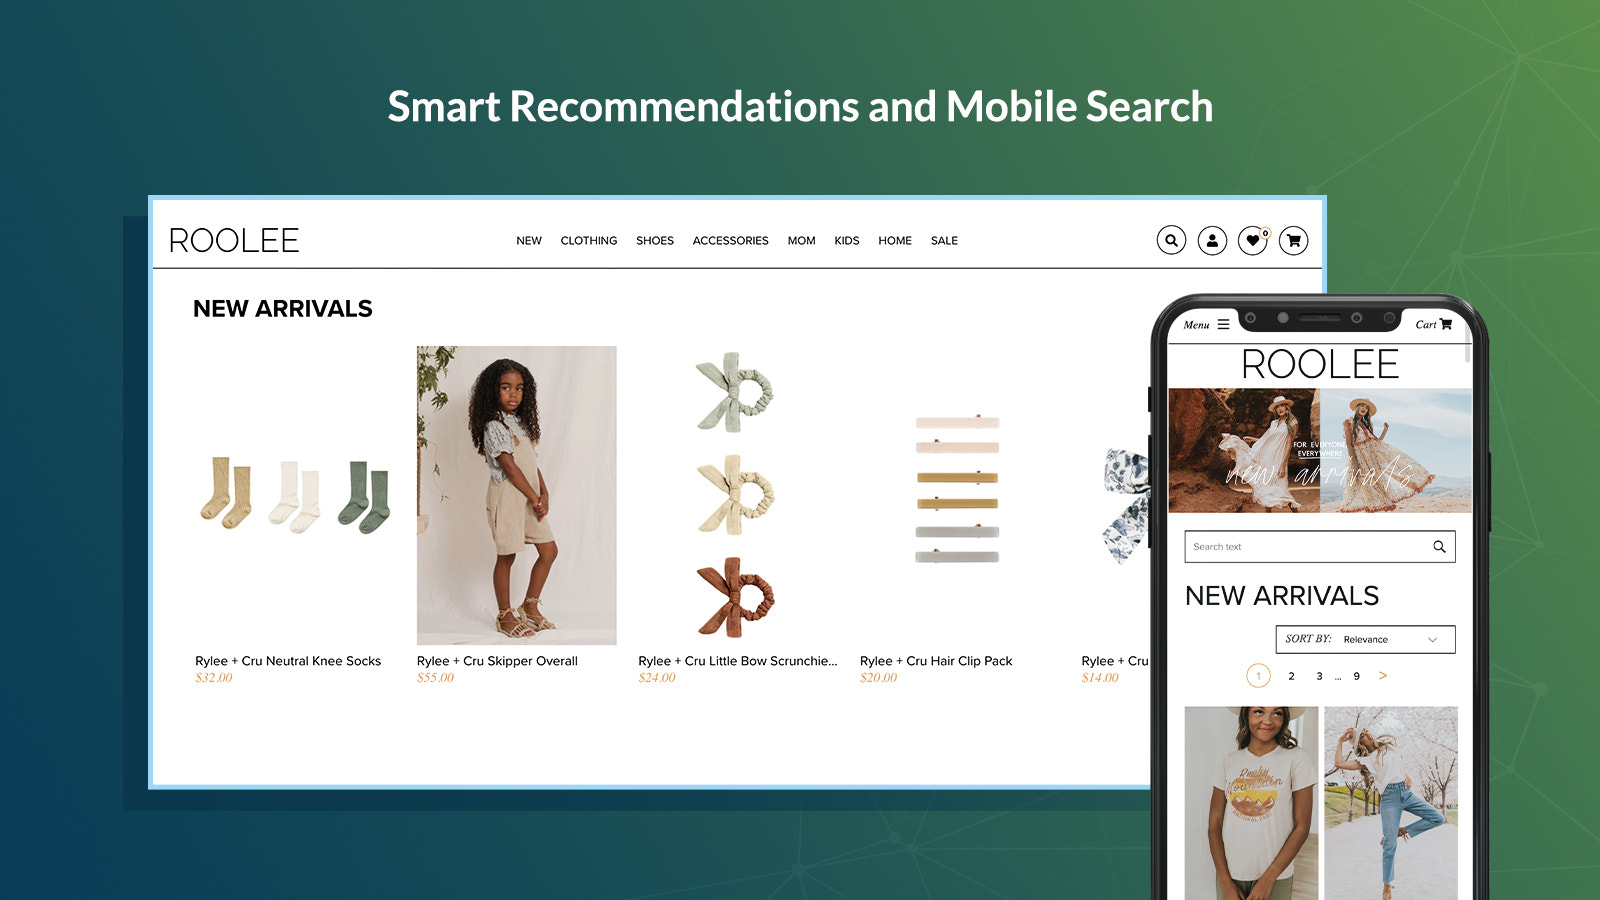 smart recommendations and mobile search